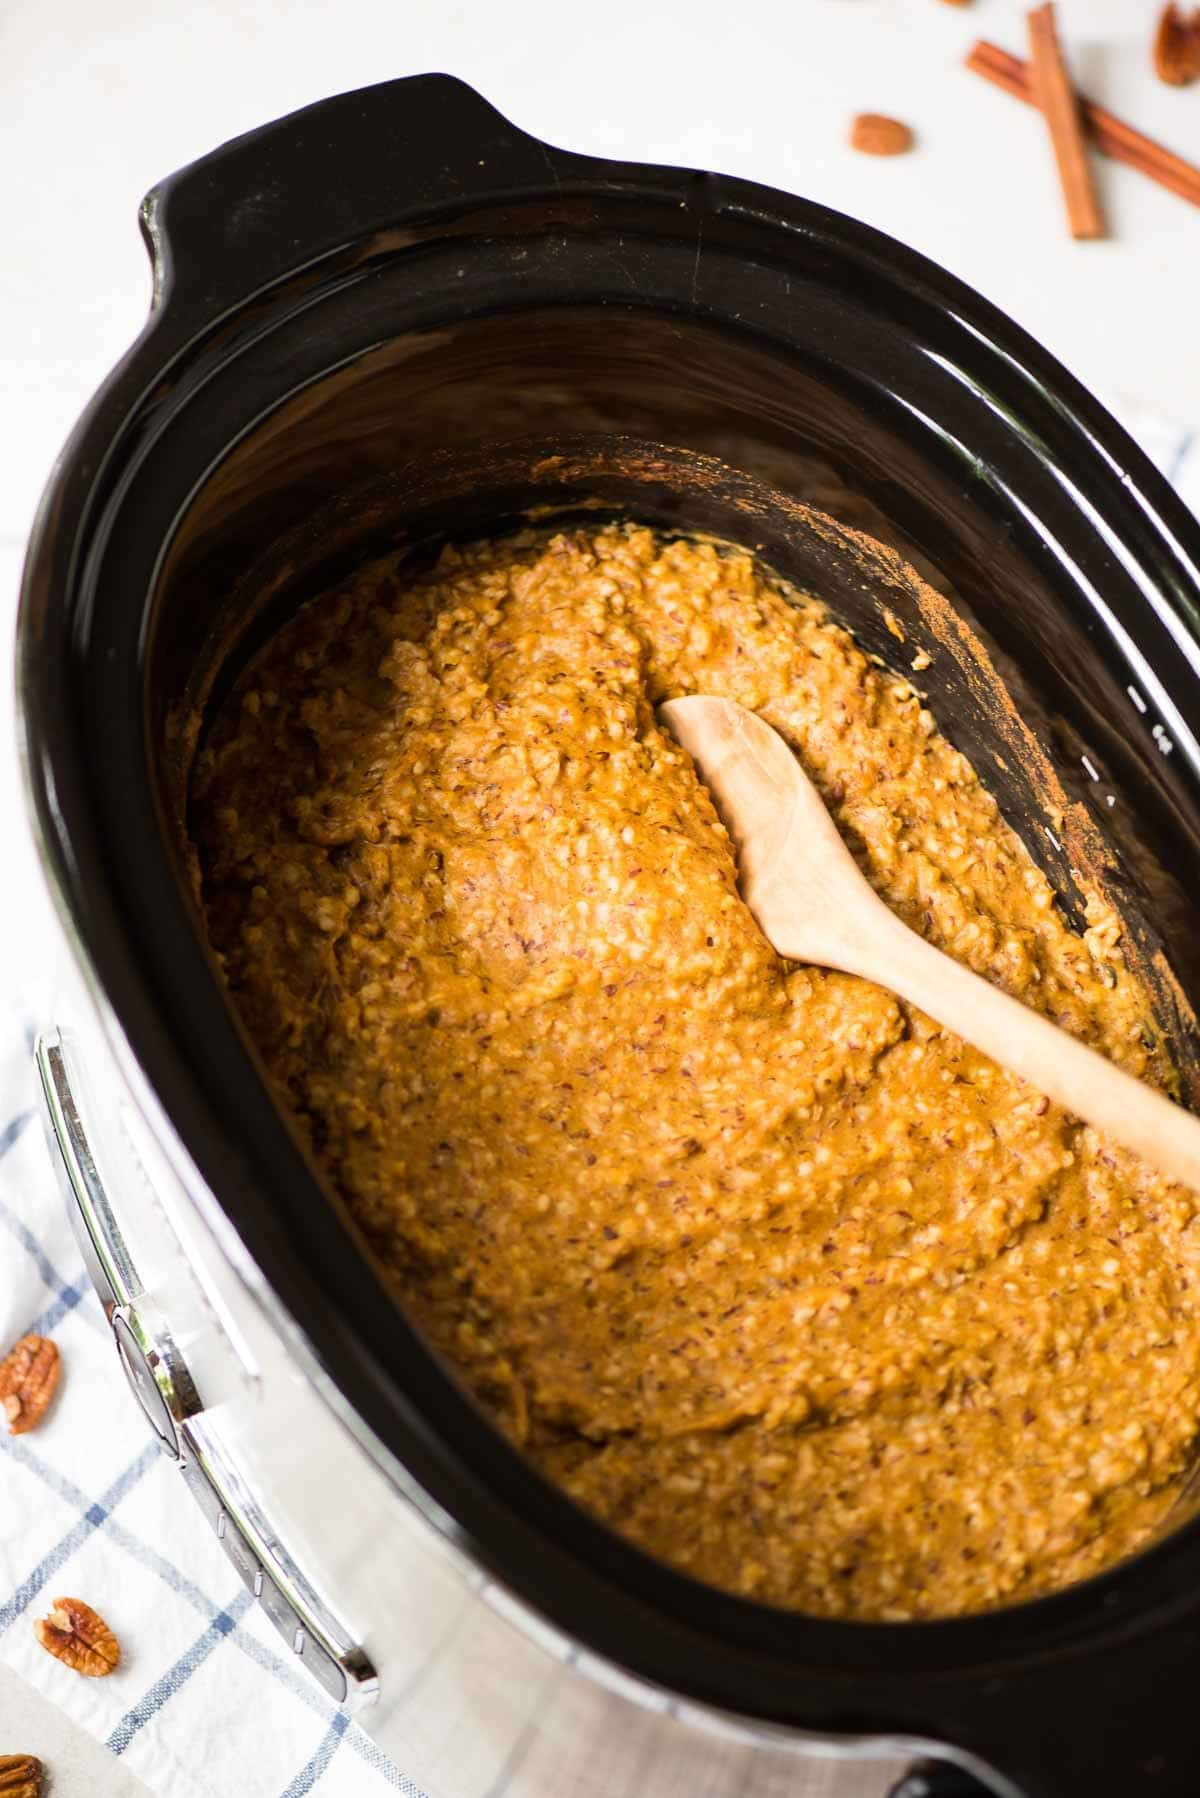 Easy Slow Cooker Pumpkin Overnight Oats. The perfect make-ahead breakfast. Easy, healthy, and great leftover too! @wellplated